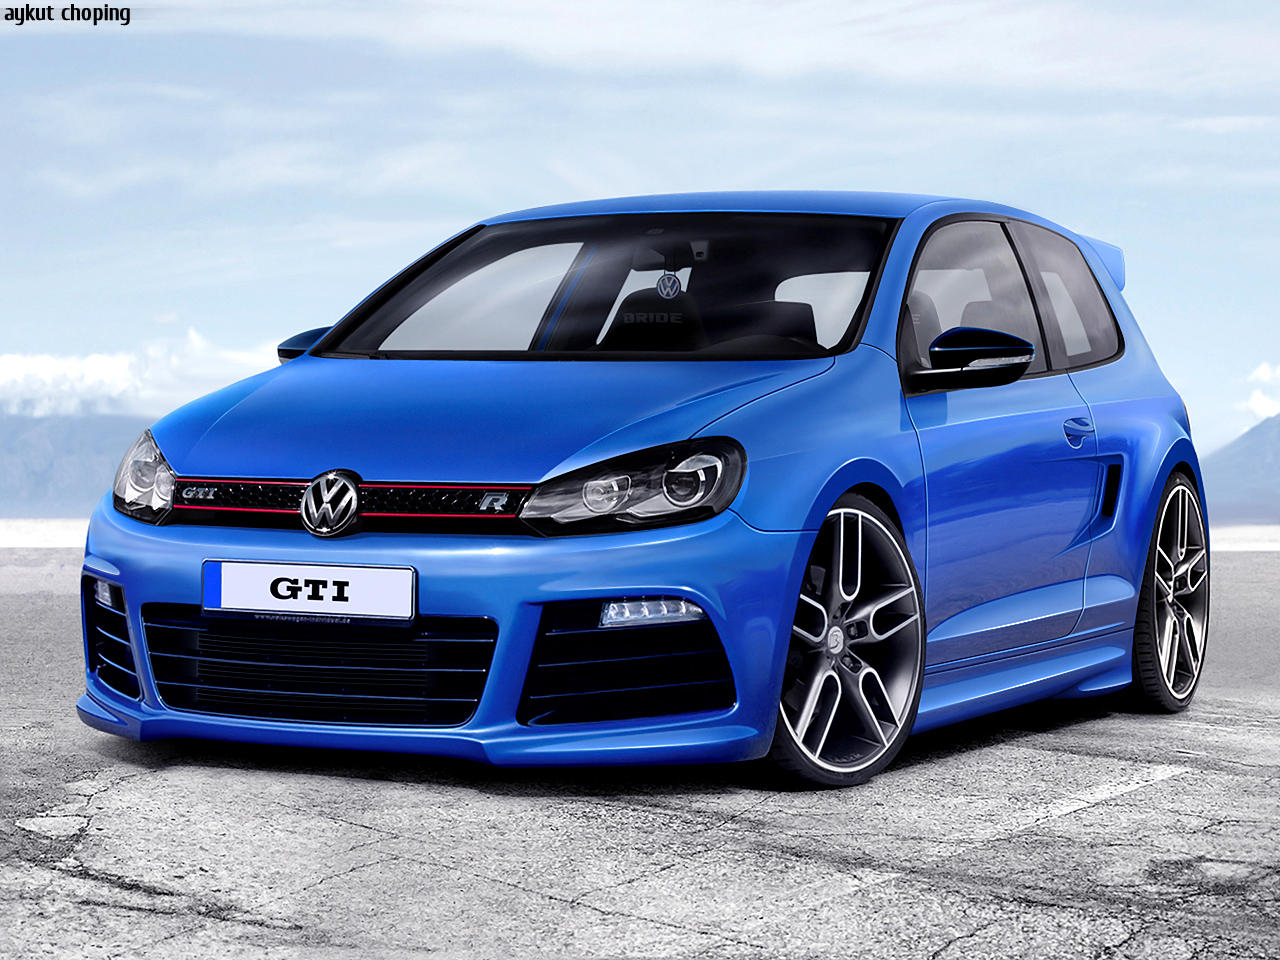 test vw golf gti vs gtd auto motor und sport tv gti rear videos car photos test vw golf gti. Black Bedroom Furniture Sets. Home Design Ideas